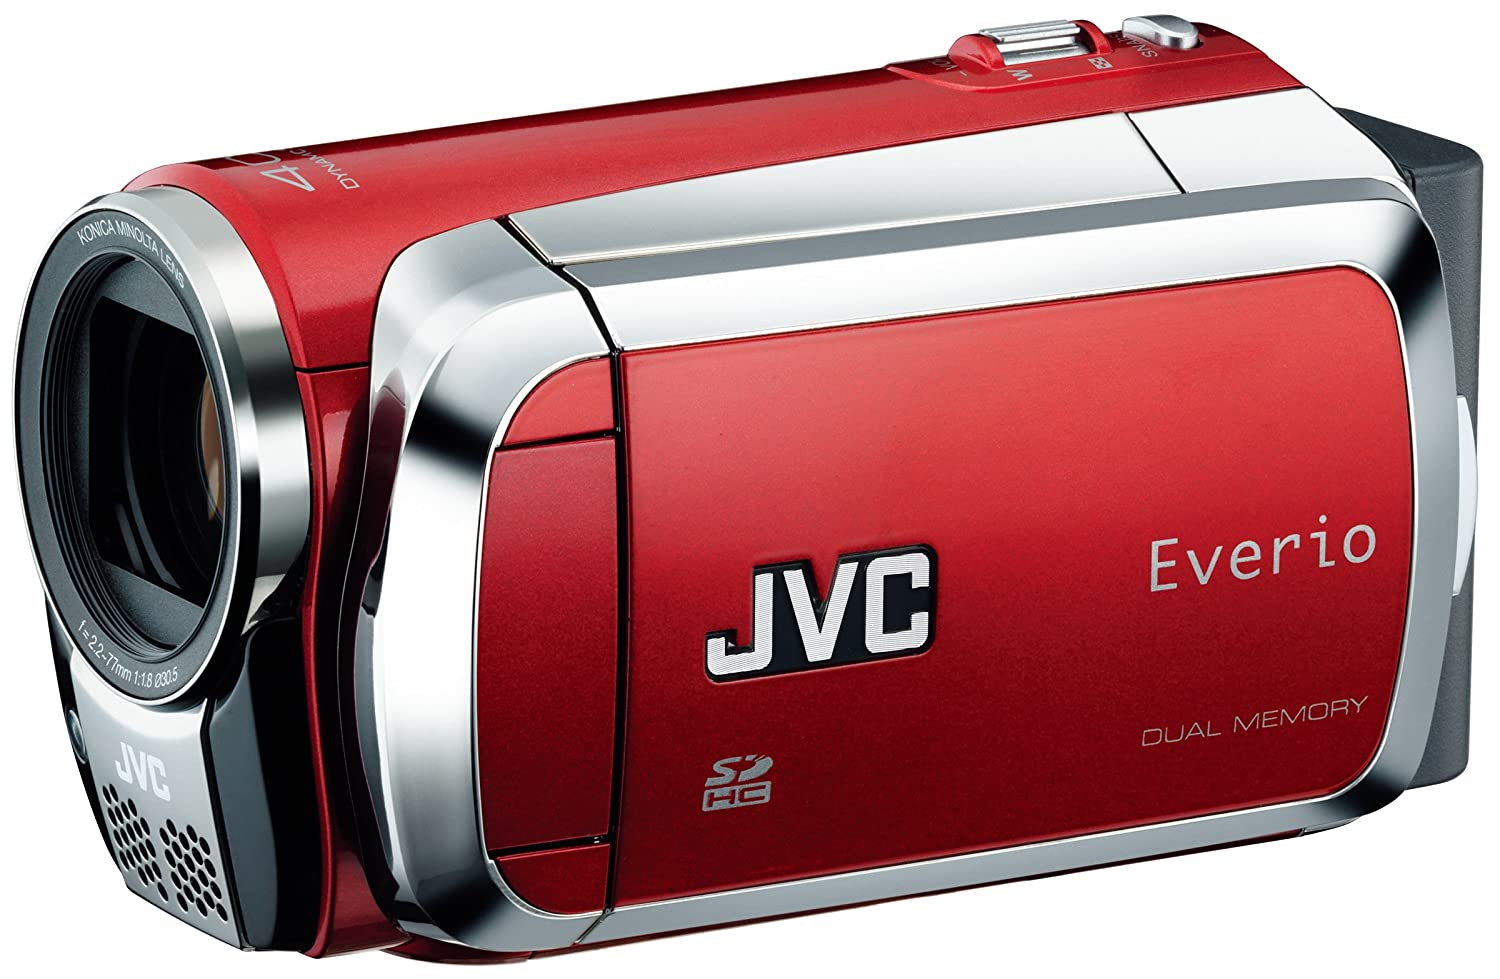 jvc everio instructions manual best setting instruction guide u2022 rh merchanthelps us jvc digital video camera instruction manual JVC Camcorder Accessories